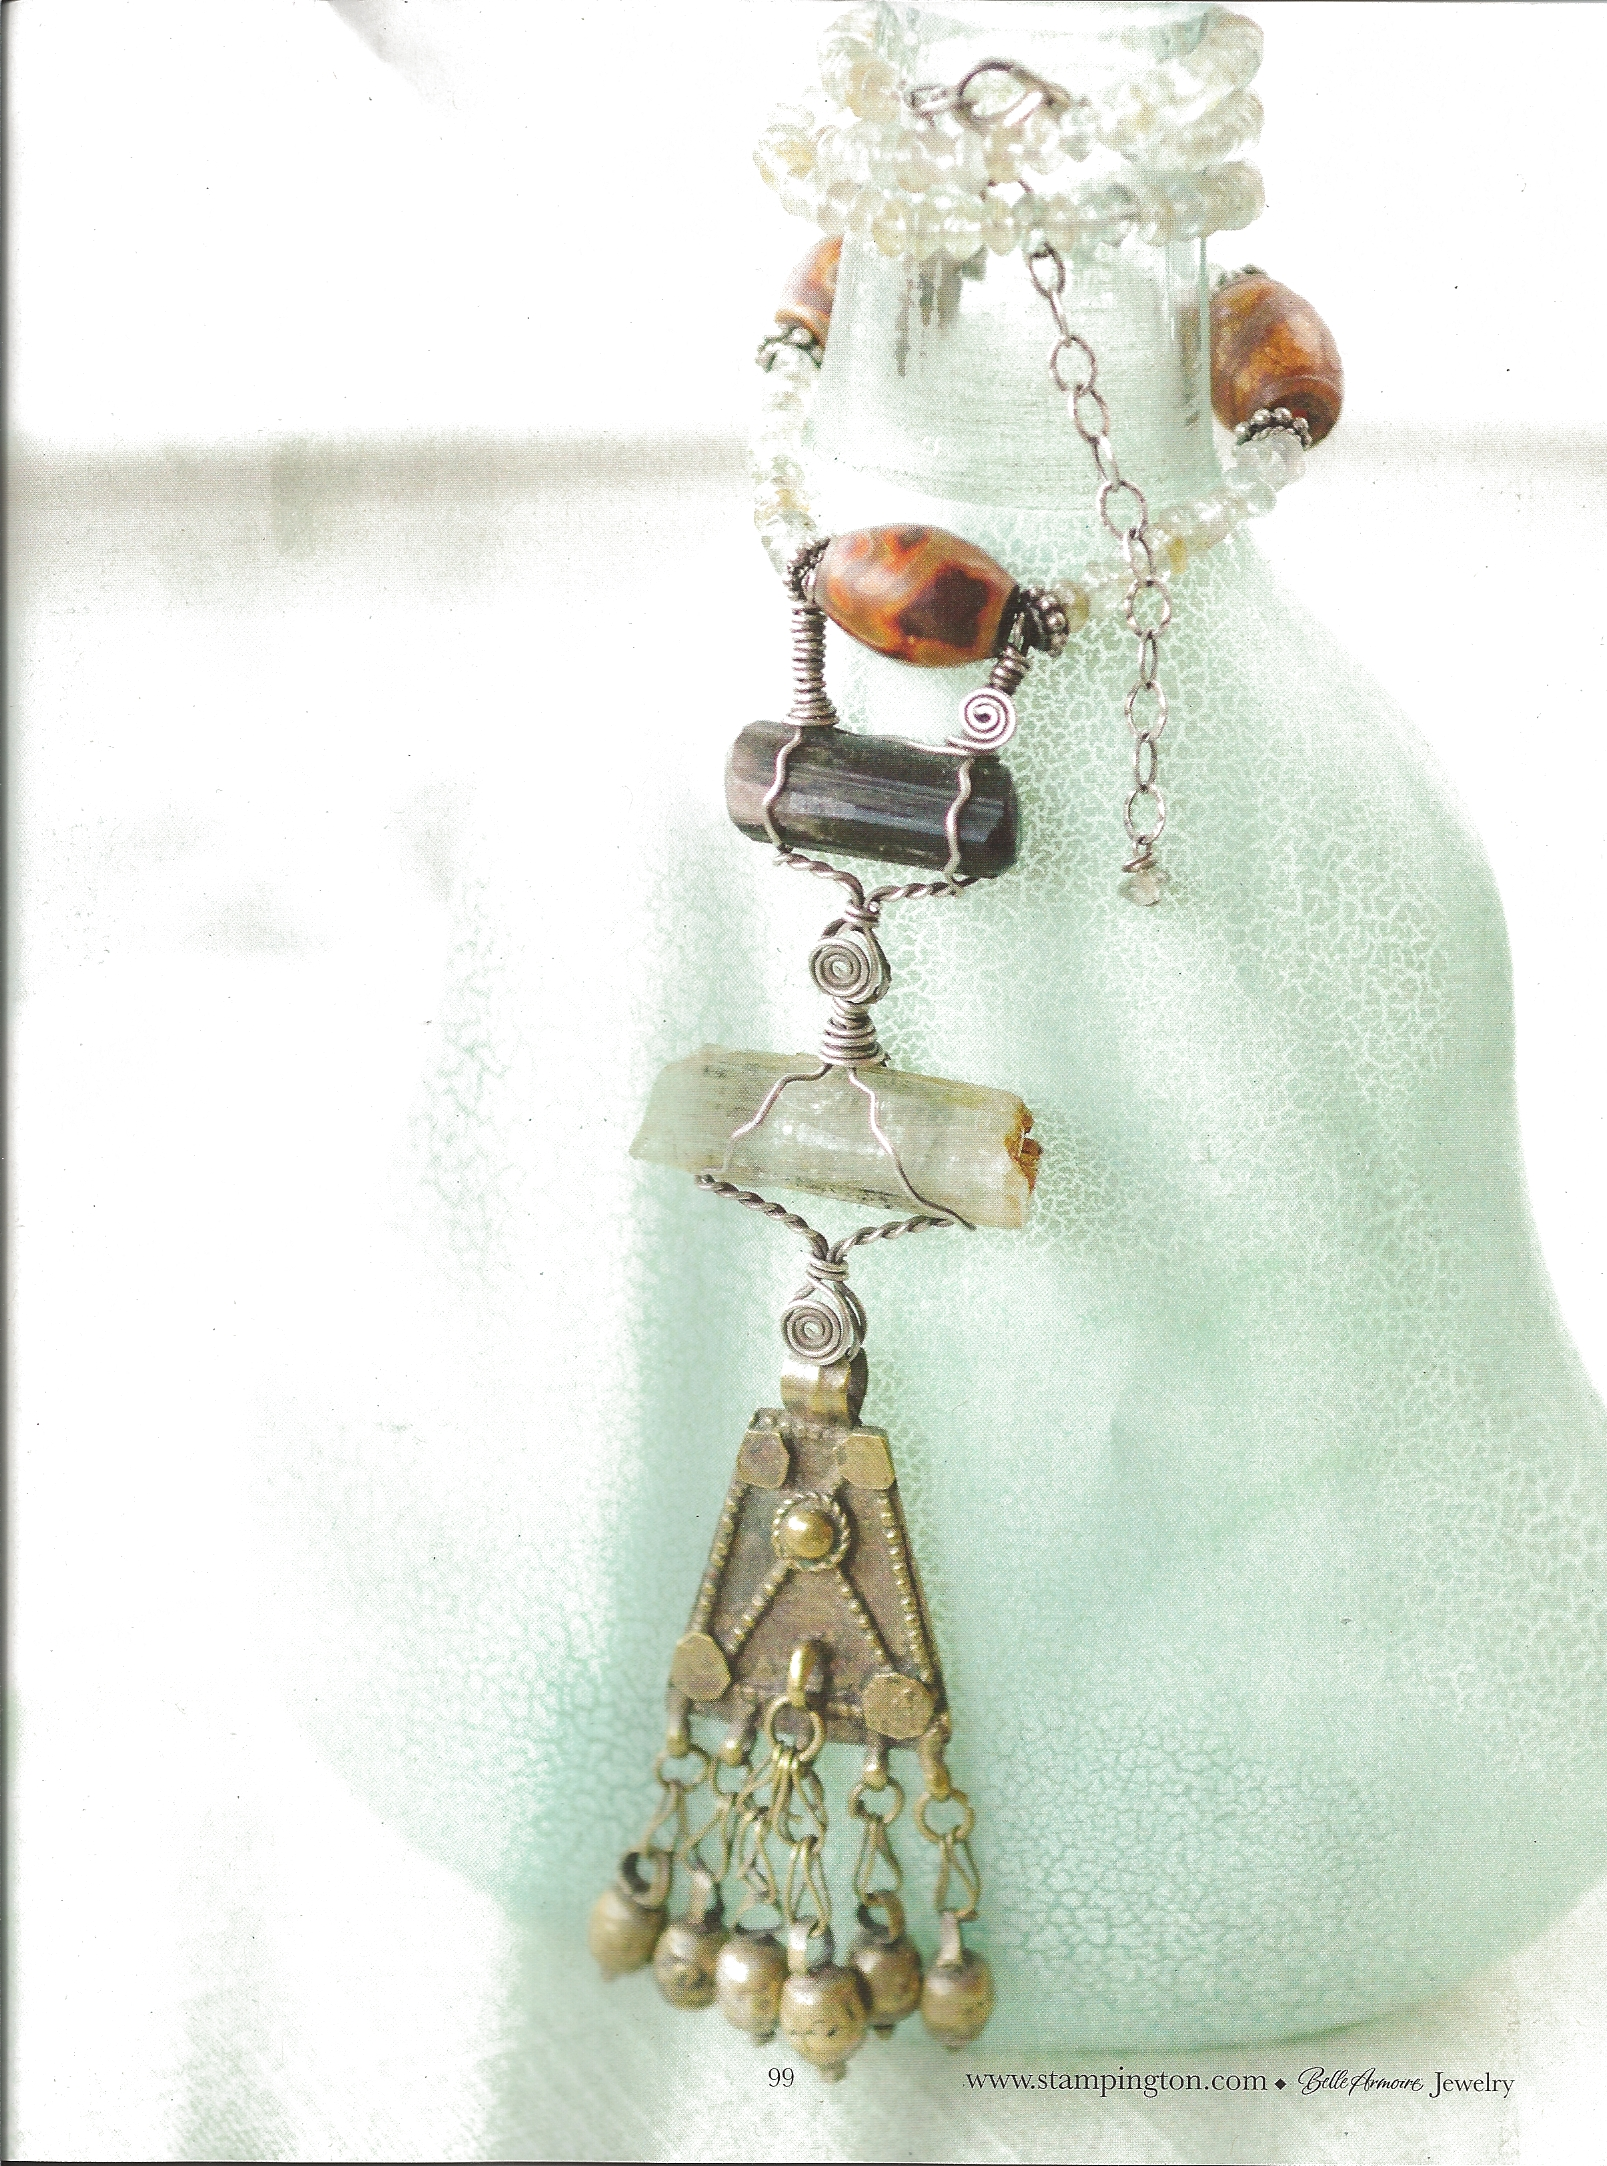 Belle amoire jewelry summer issue 2012 silvia peluso 39 s for Belle armoire jewelry magazine subscription